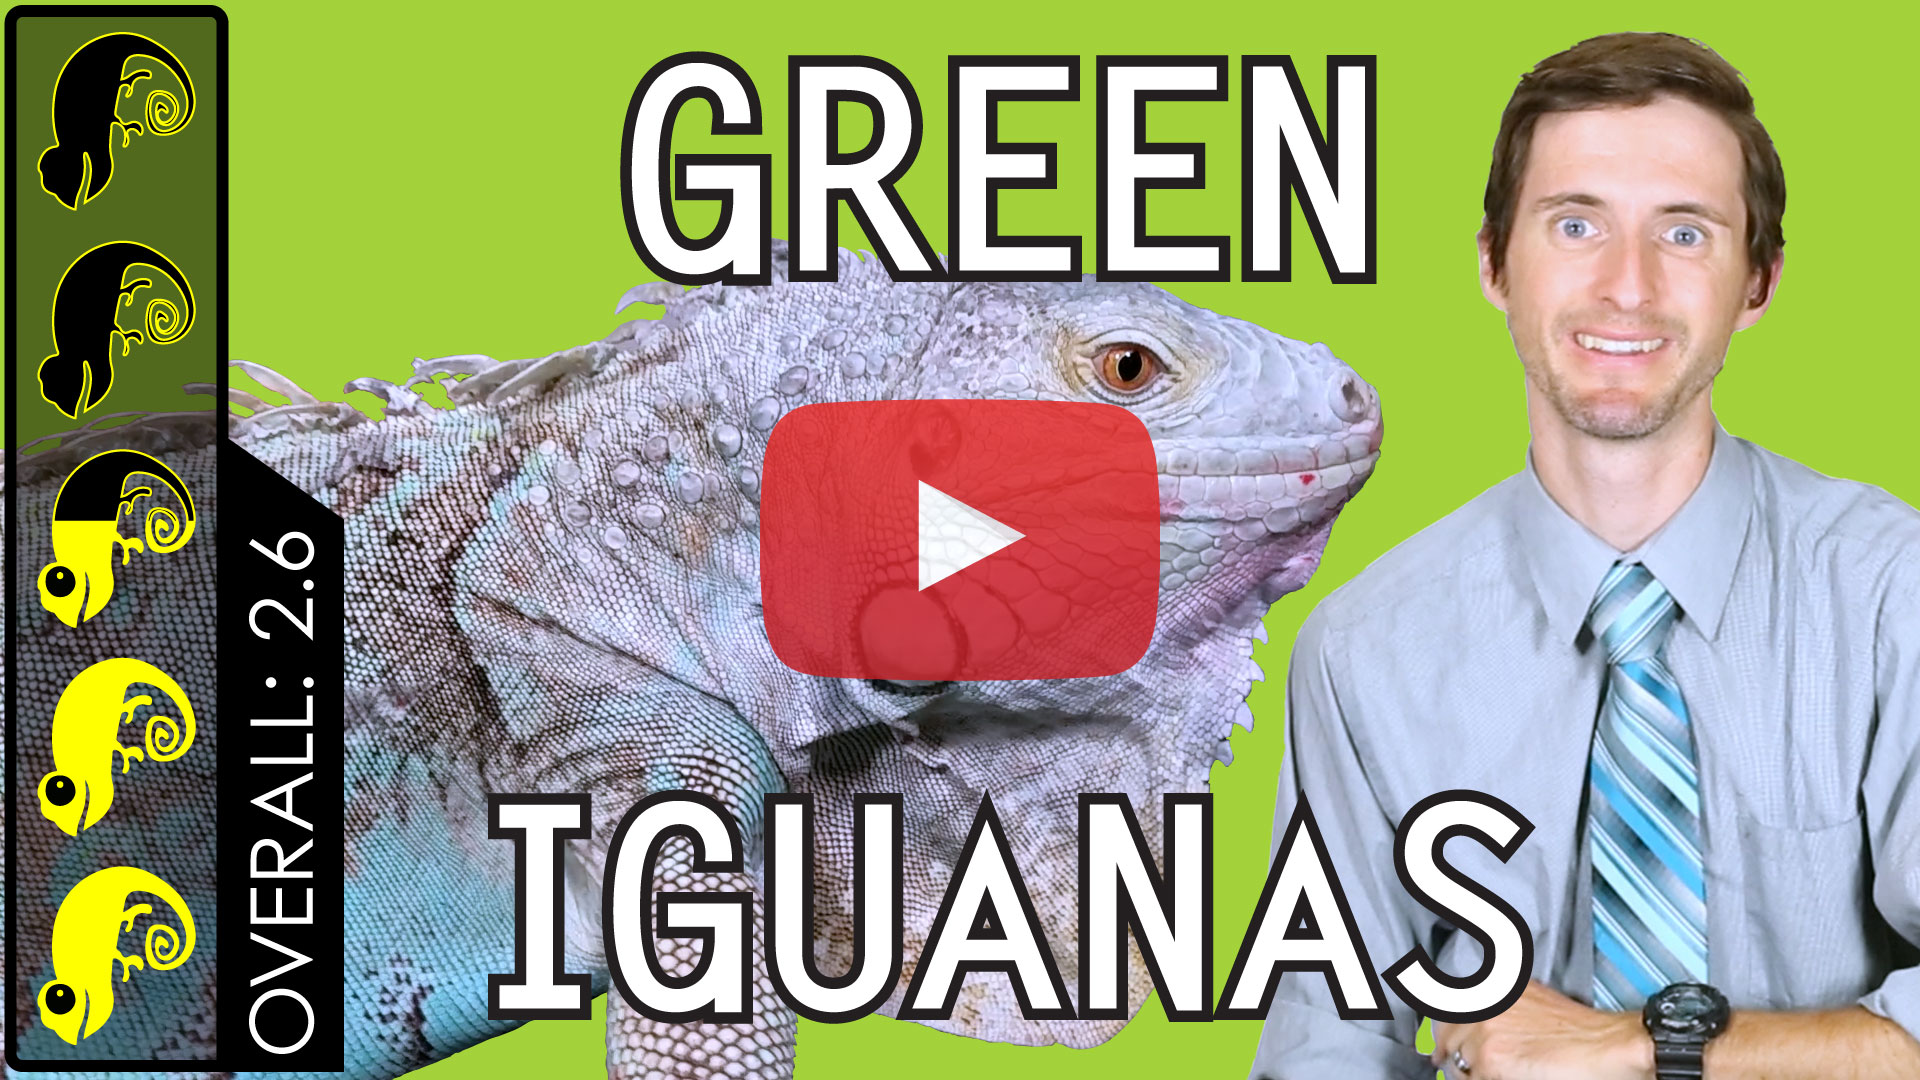 Green-Iguana-Overview-Thumbnail-Play